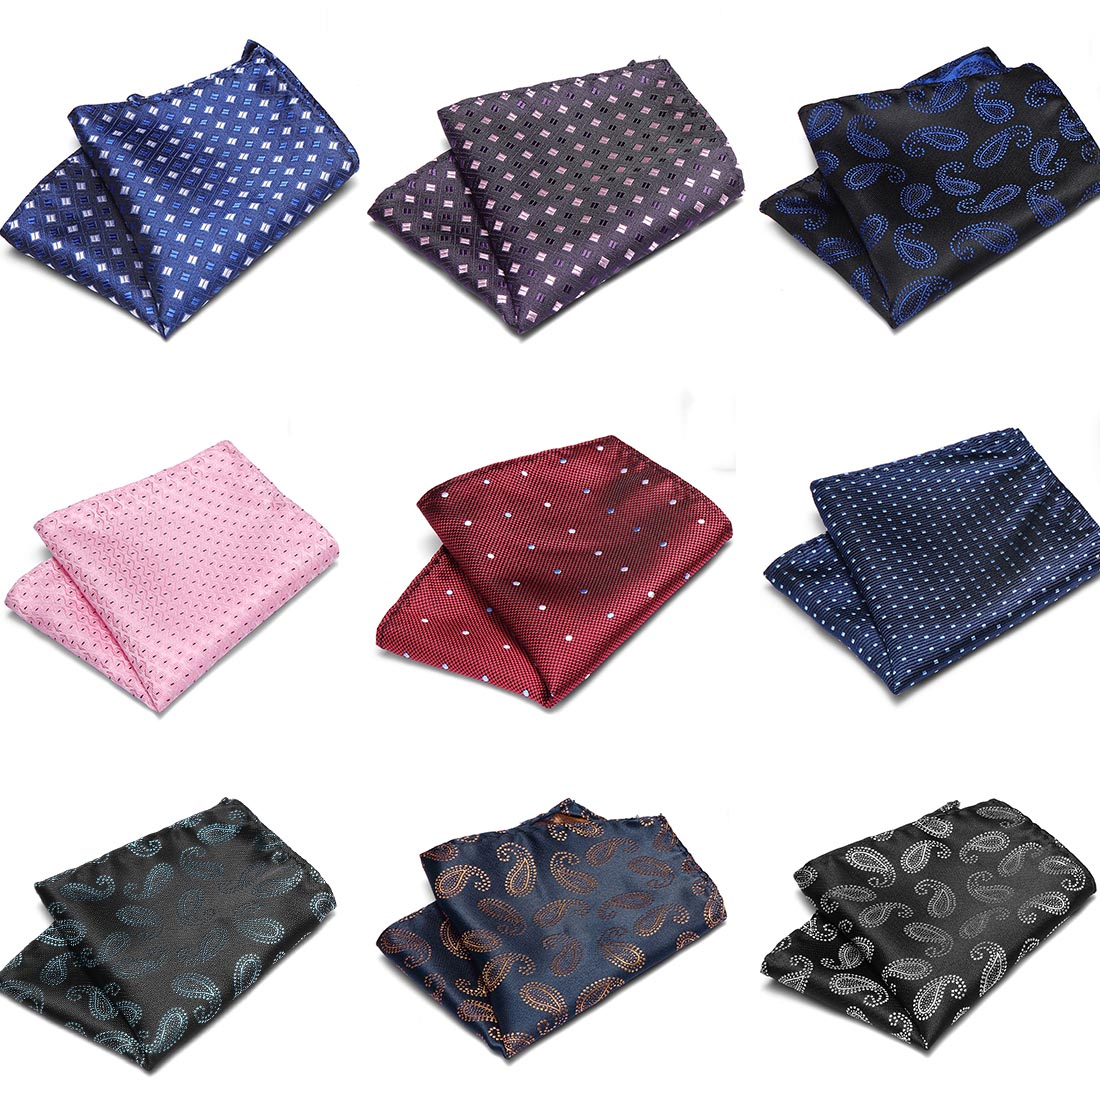 Luxury 22*22cm Men's Pocket Square 100% Silk Hankerchief Paisley Dot Floral Hanky Wedding Party Gift Paisley Design